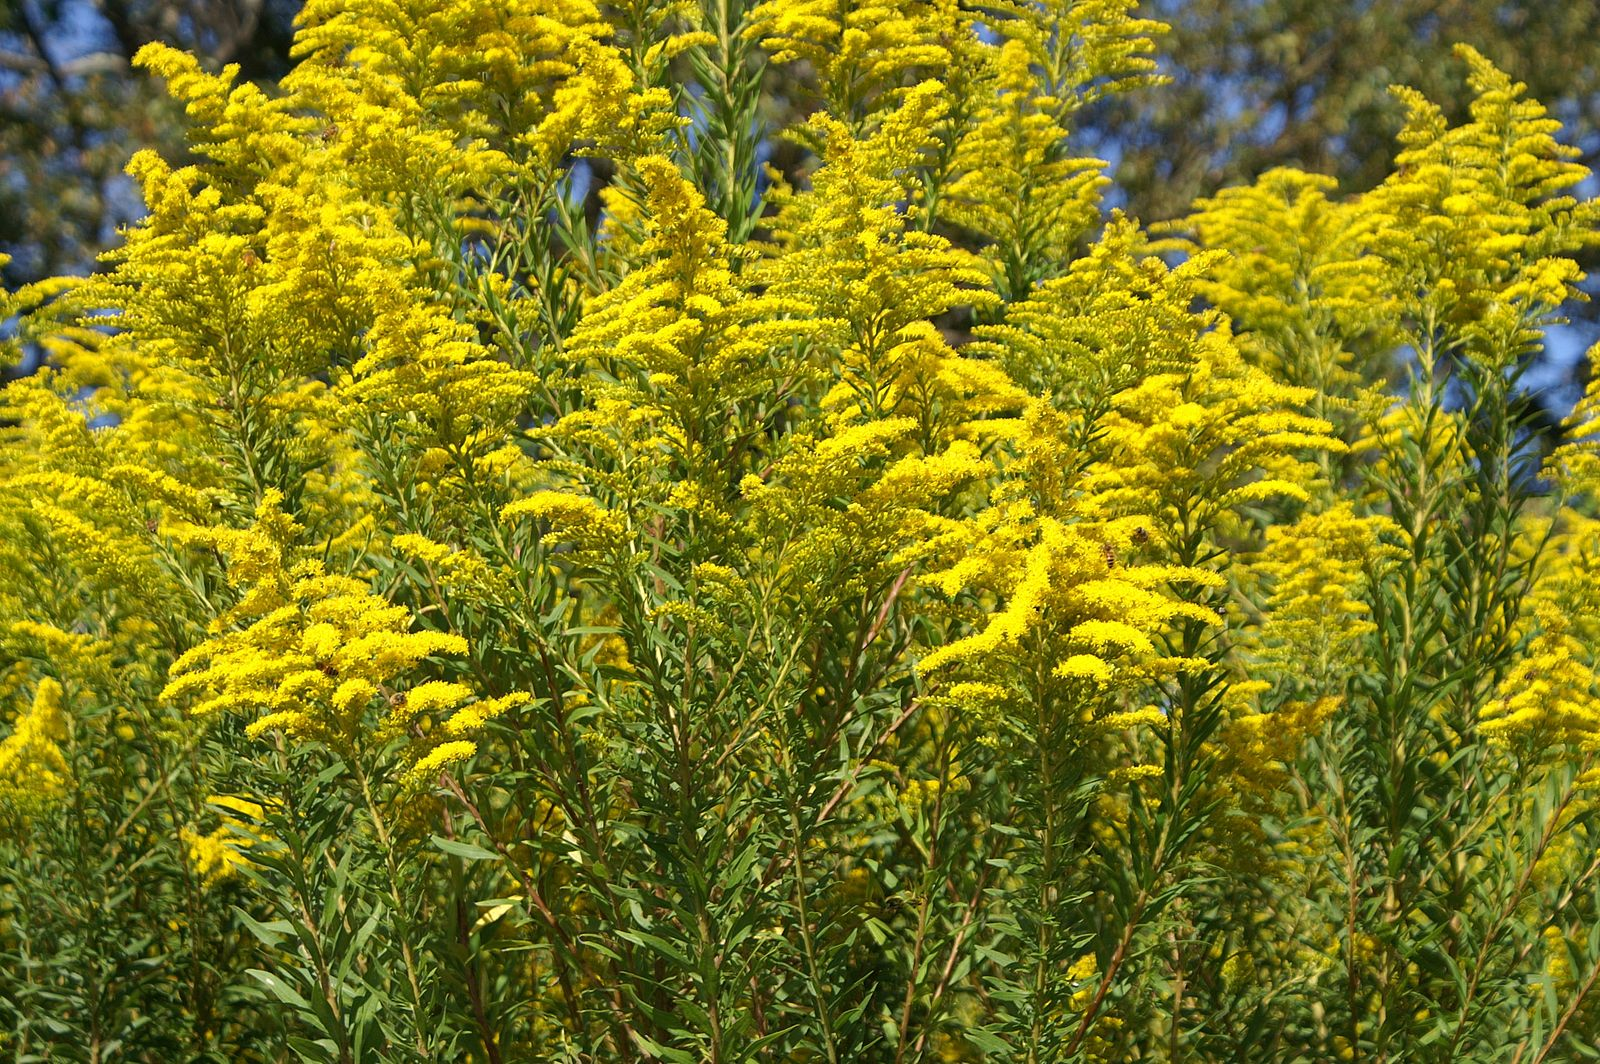 20180328K Solidago_canadensis, Harry Rose, WC).jpg